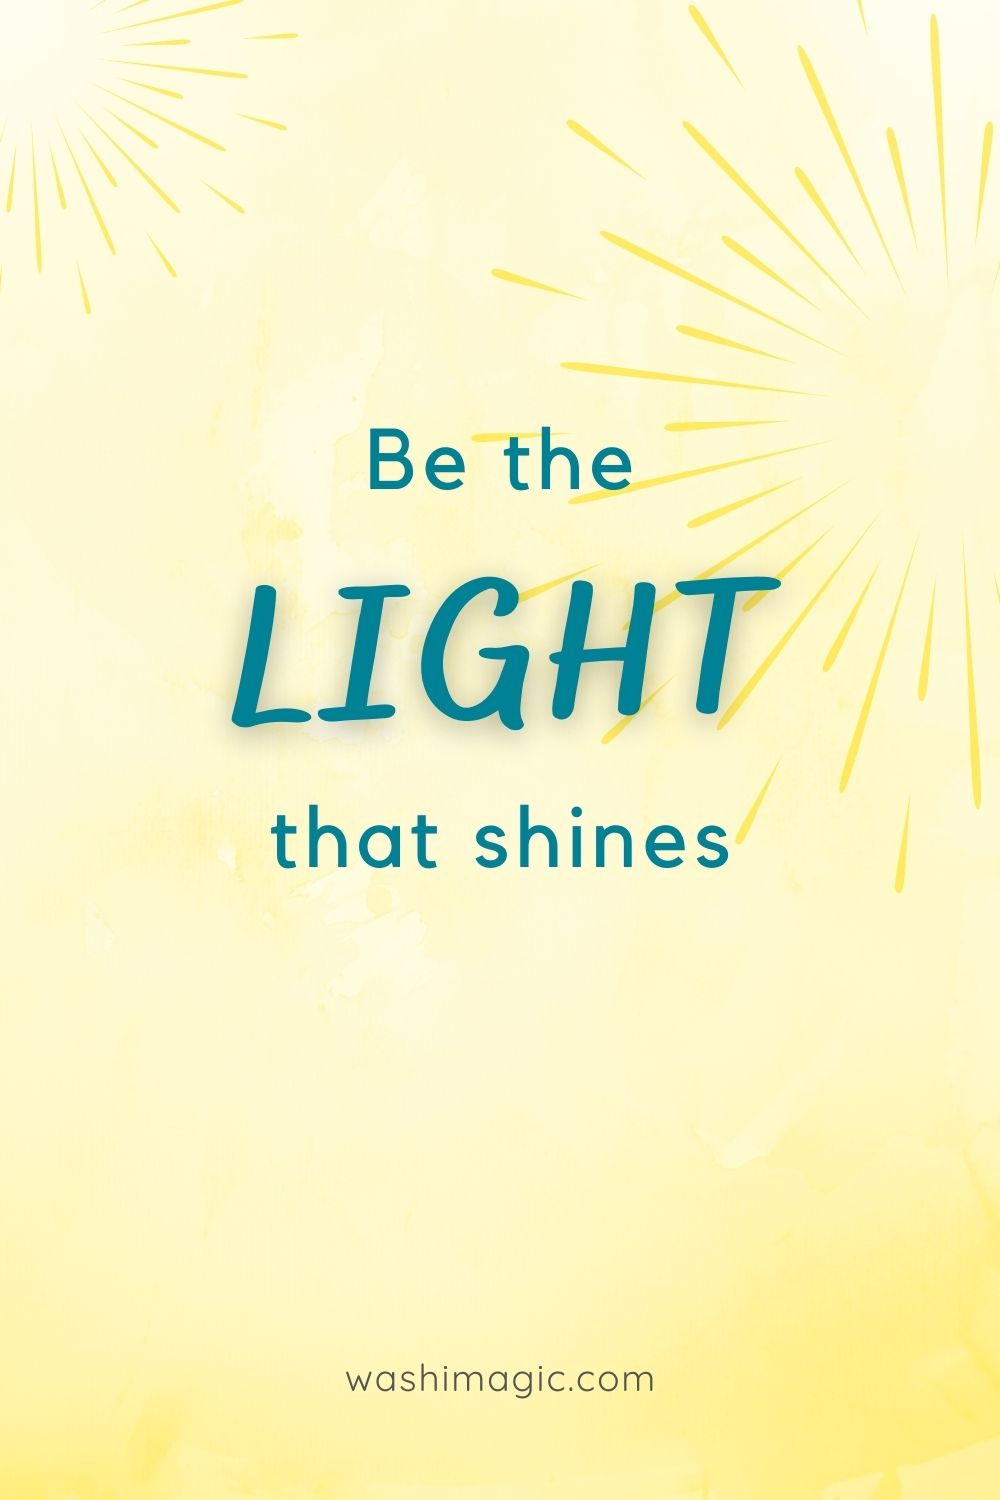 Be the light that shines | Encouraging words series | Motivational quotes | Inspiring words | Encouragement for children | Washimagic.com